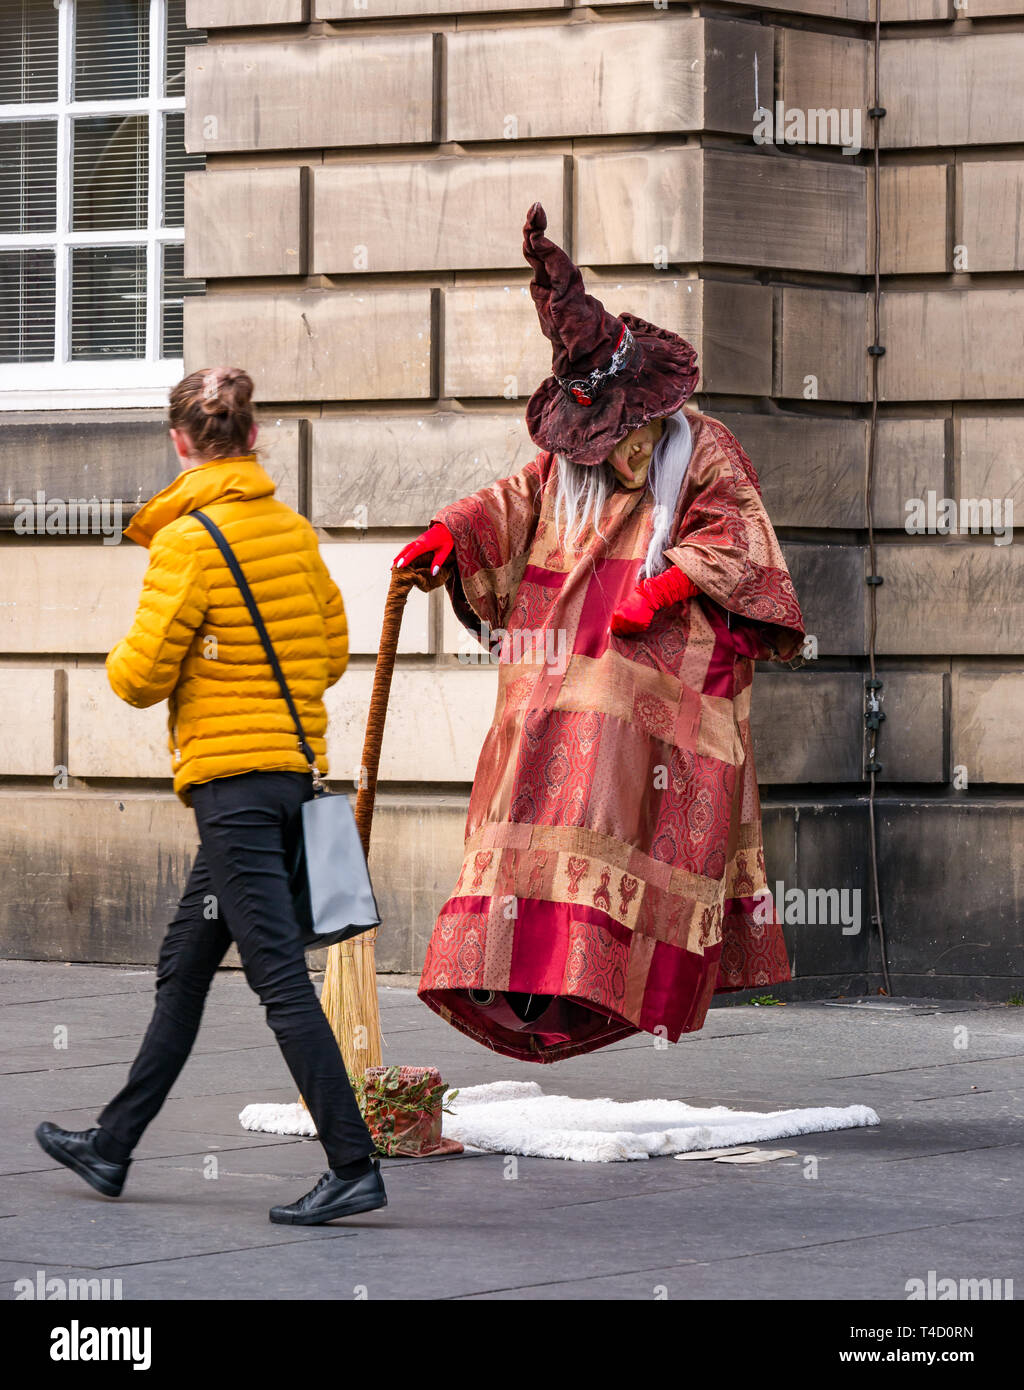 woman-walking-past-witch-and-broomstick-